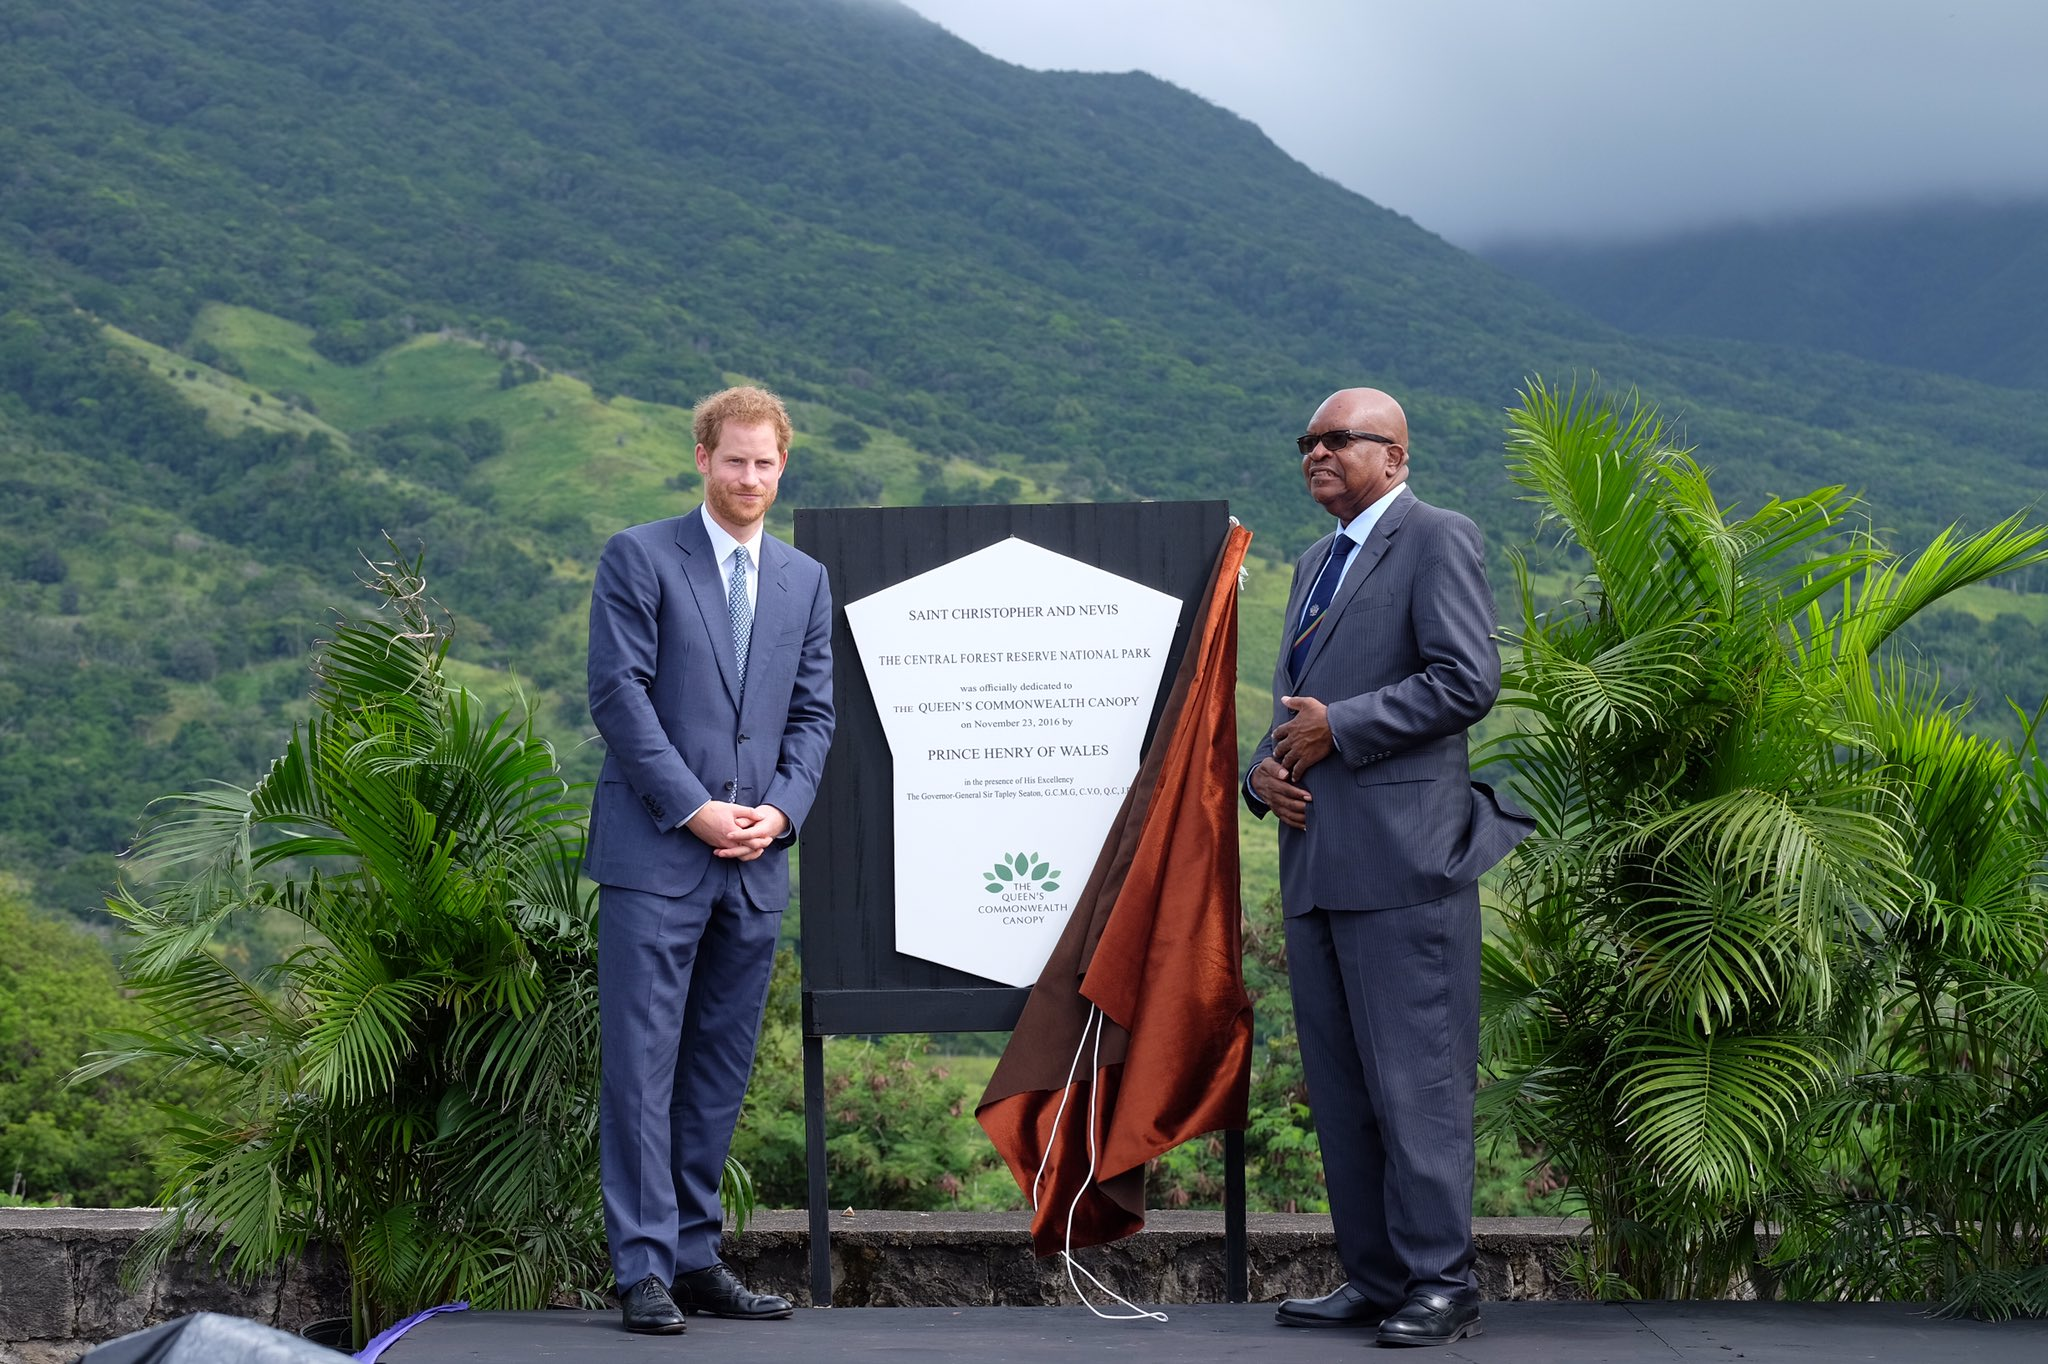 Queen's Commonwealth Canopy in St Kitts and Nevis